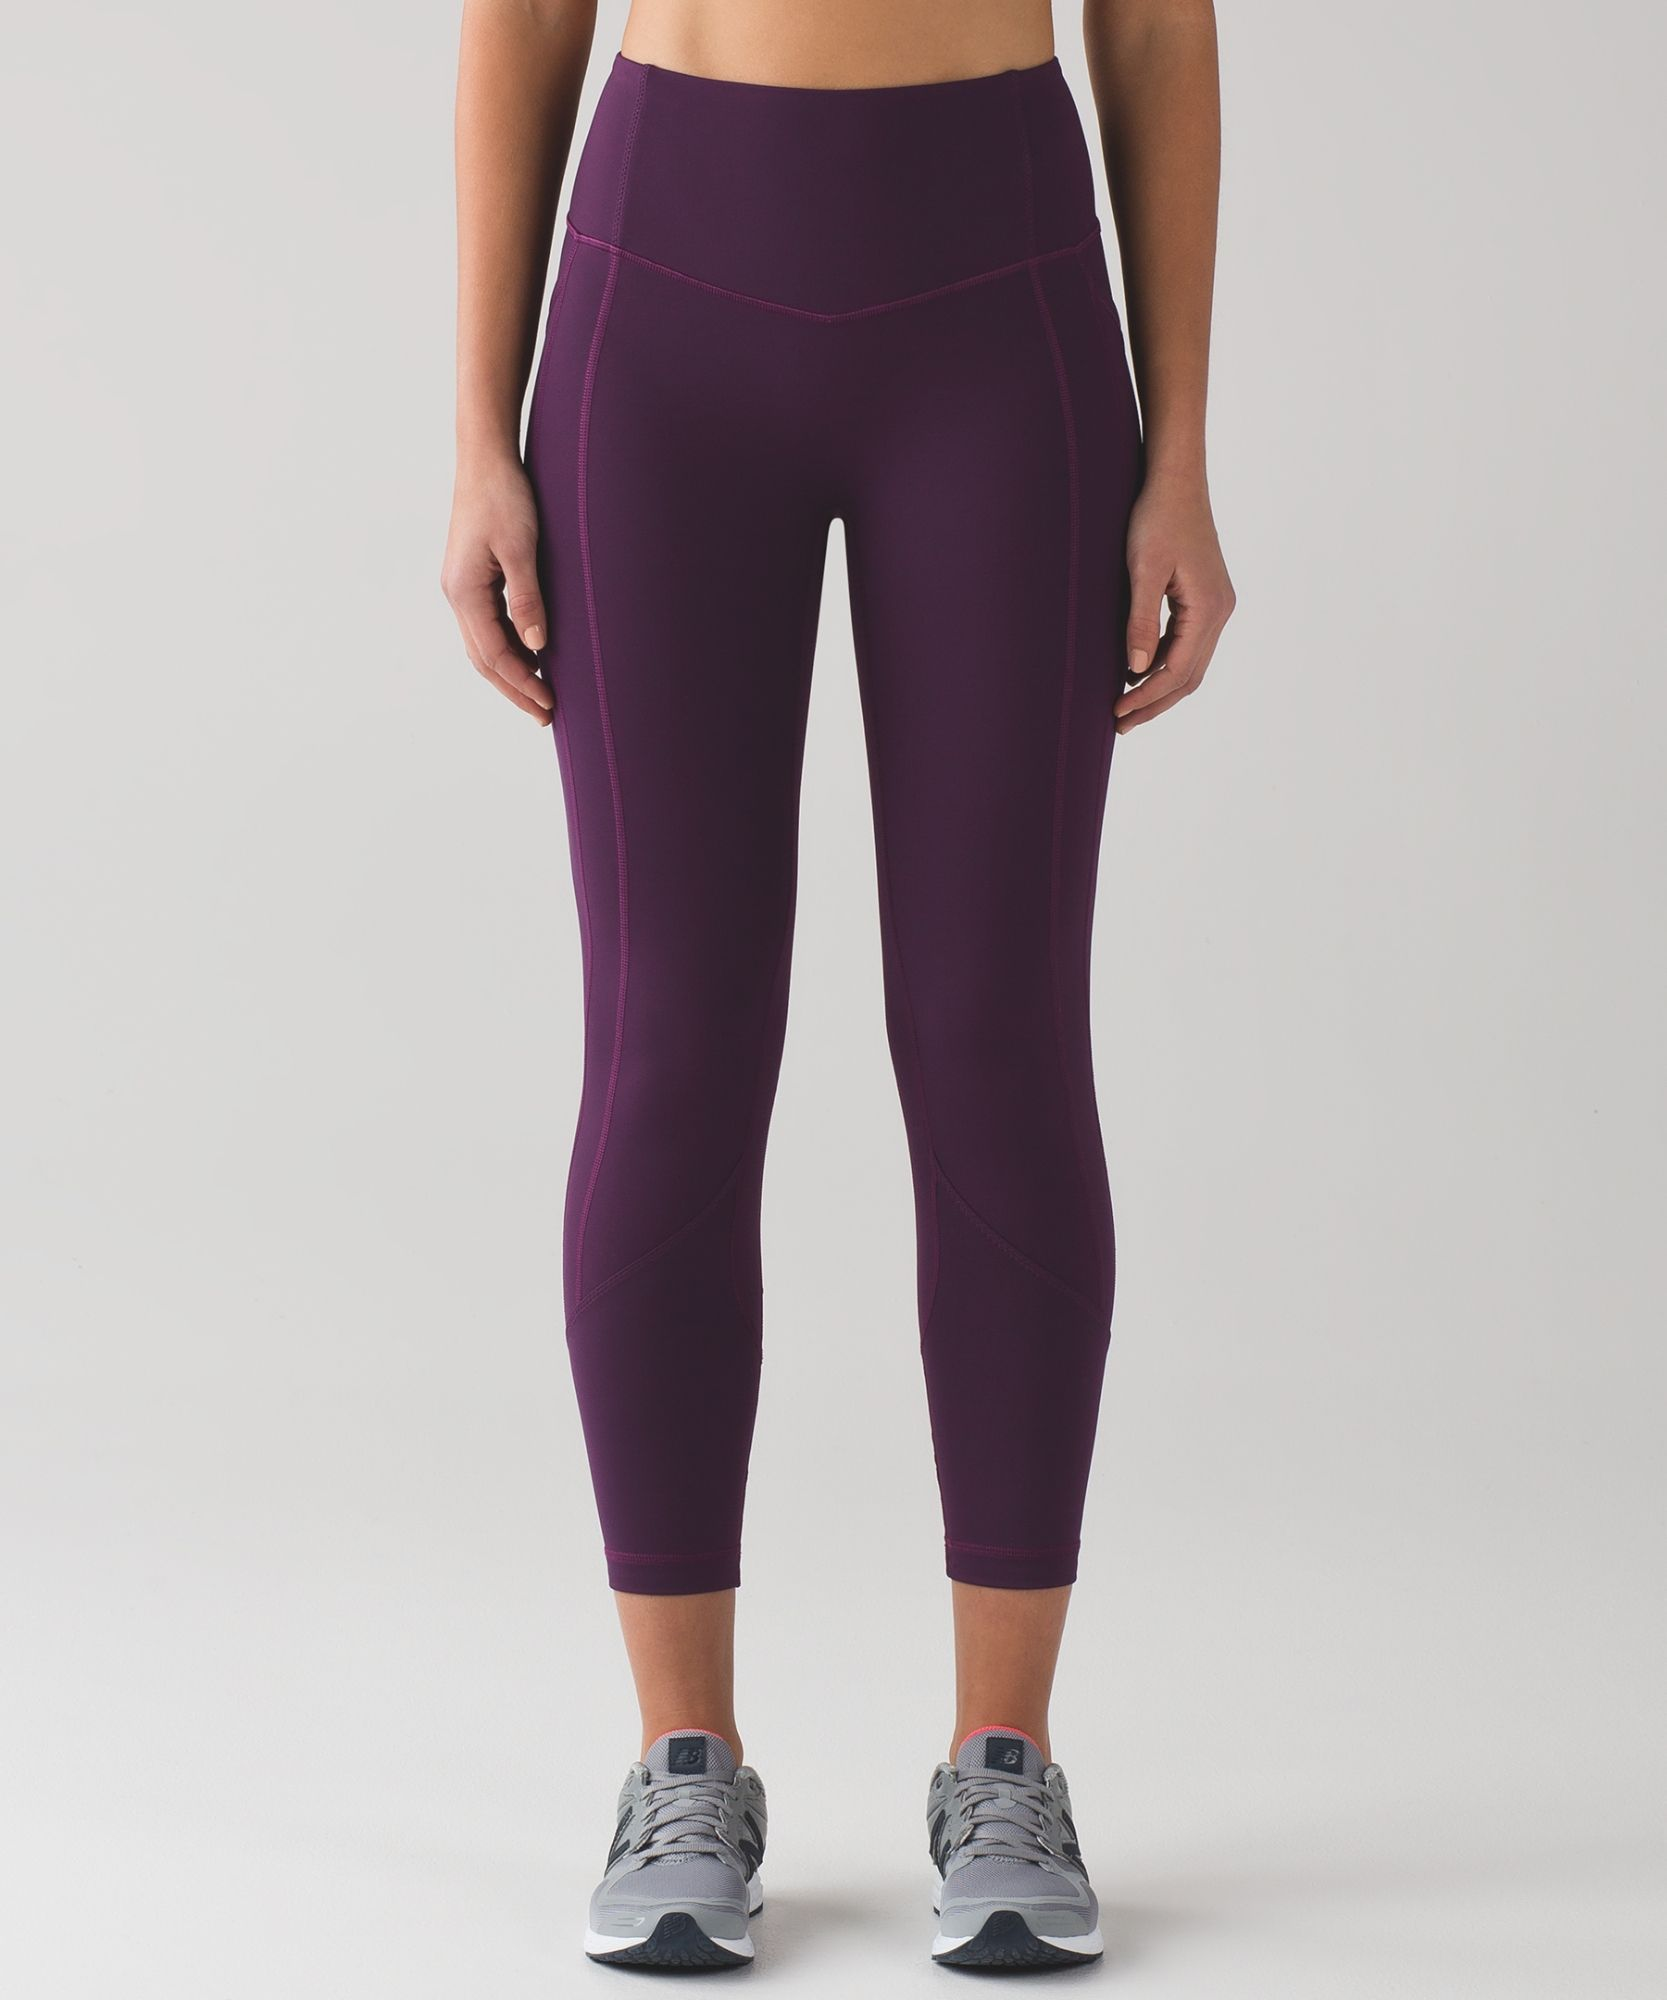 2bc024e33aca93 All the Right Places crop Lululemon - Size 4 | Gym Clothes (or ...